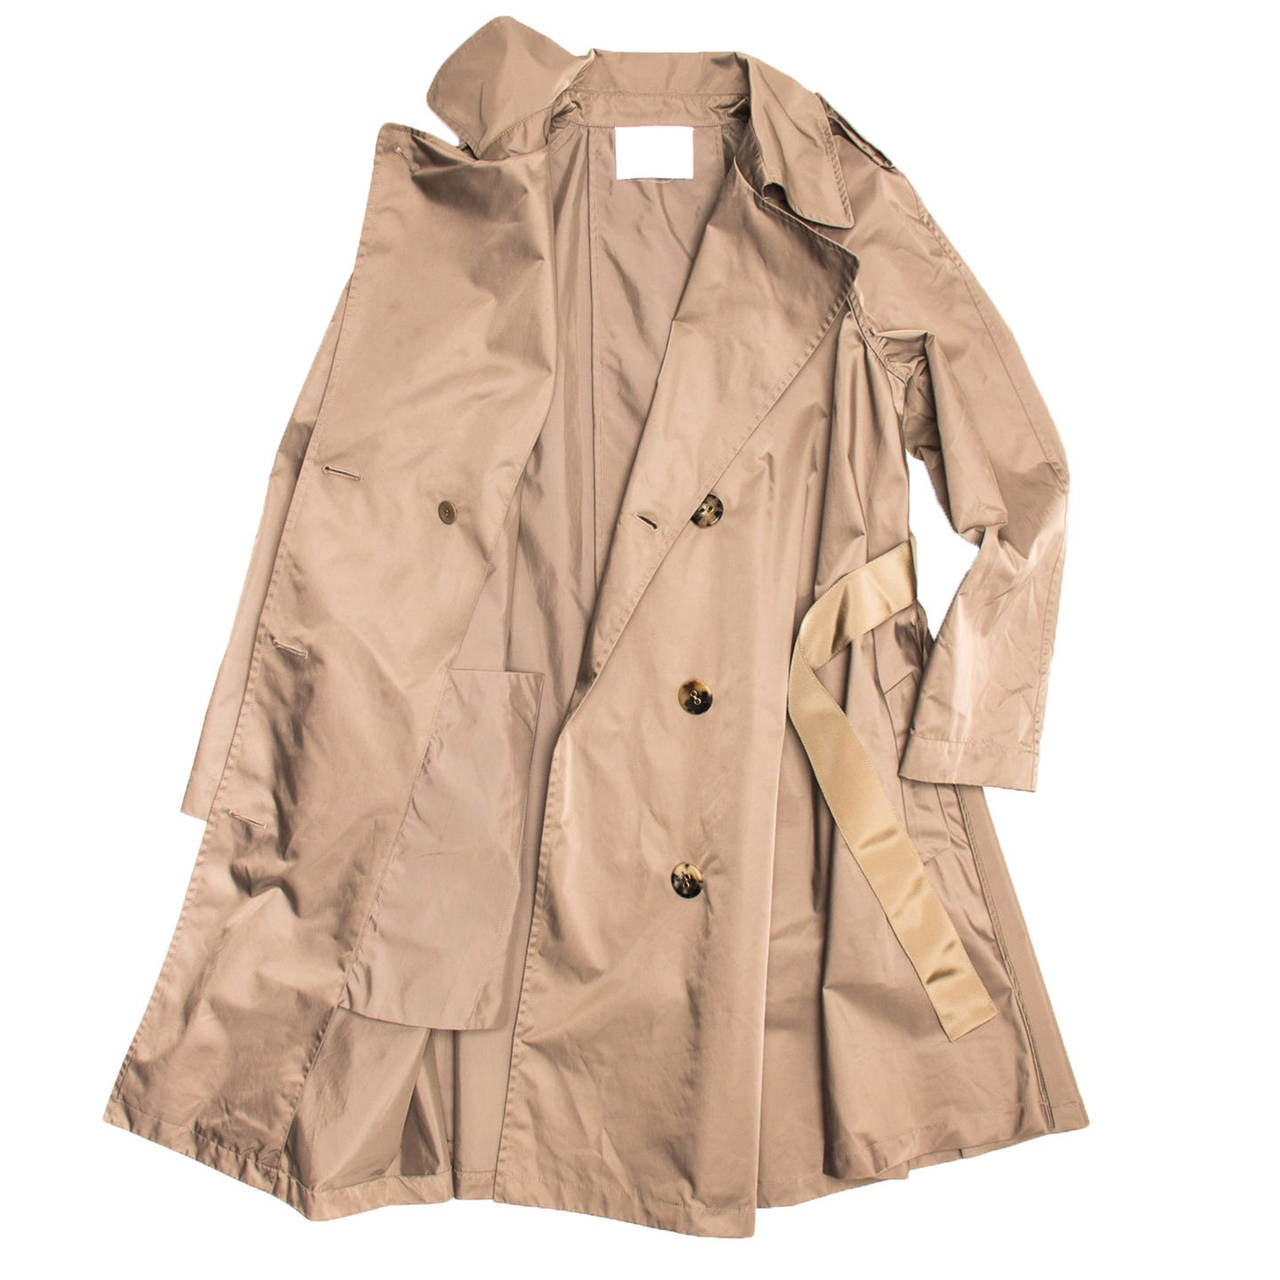 Lanvin Coat - 2008 Taupe Bell Shape Raincoat With Ribbon Belt 4